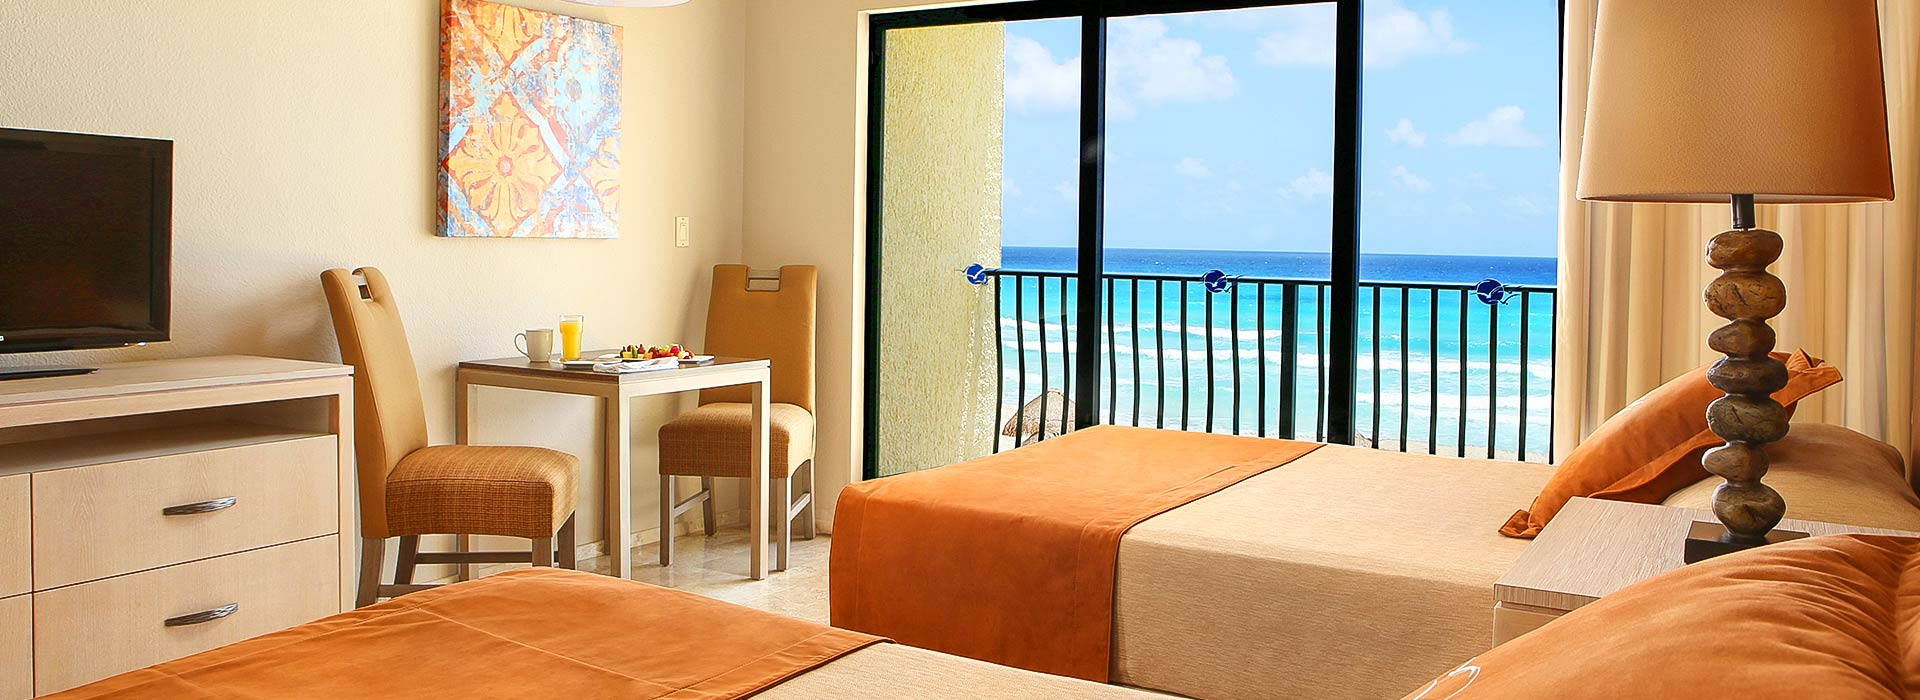 Two Bedroom All Inclusive Resorts Bedroom Review Design